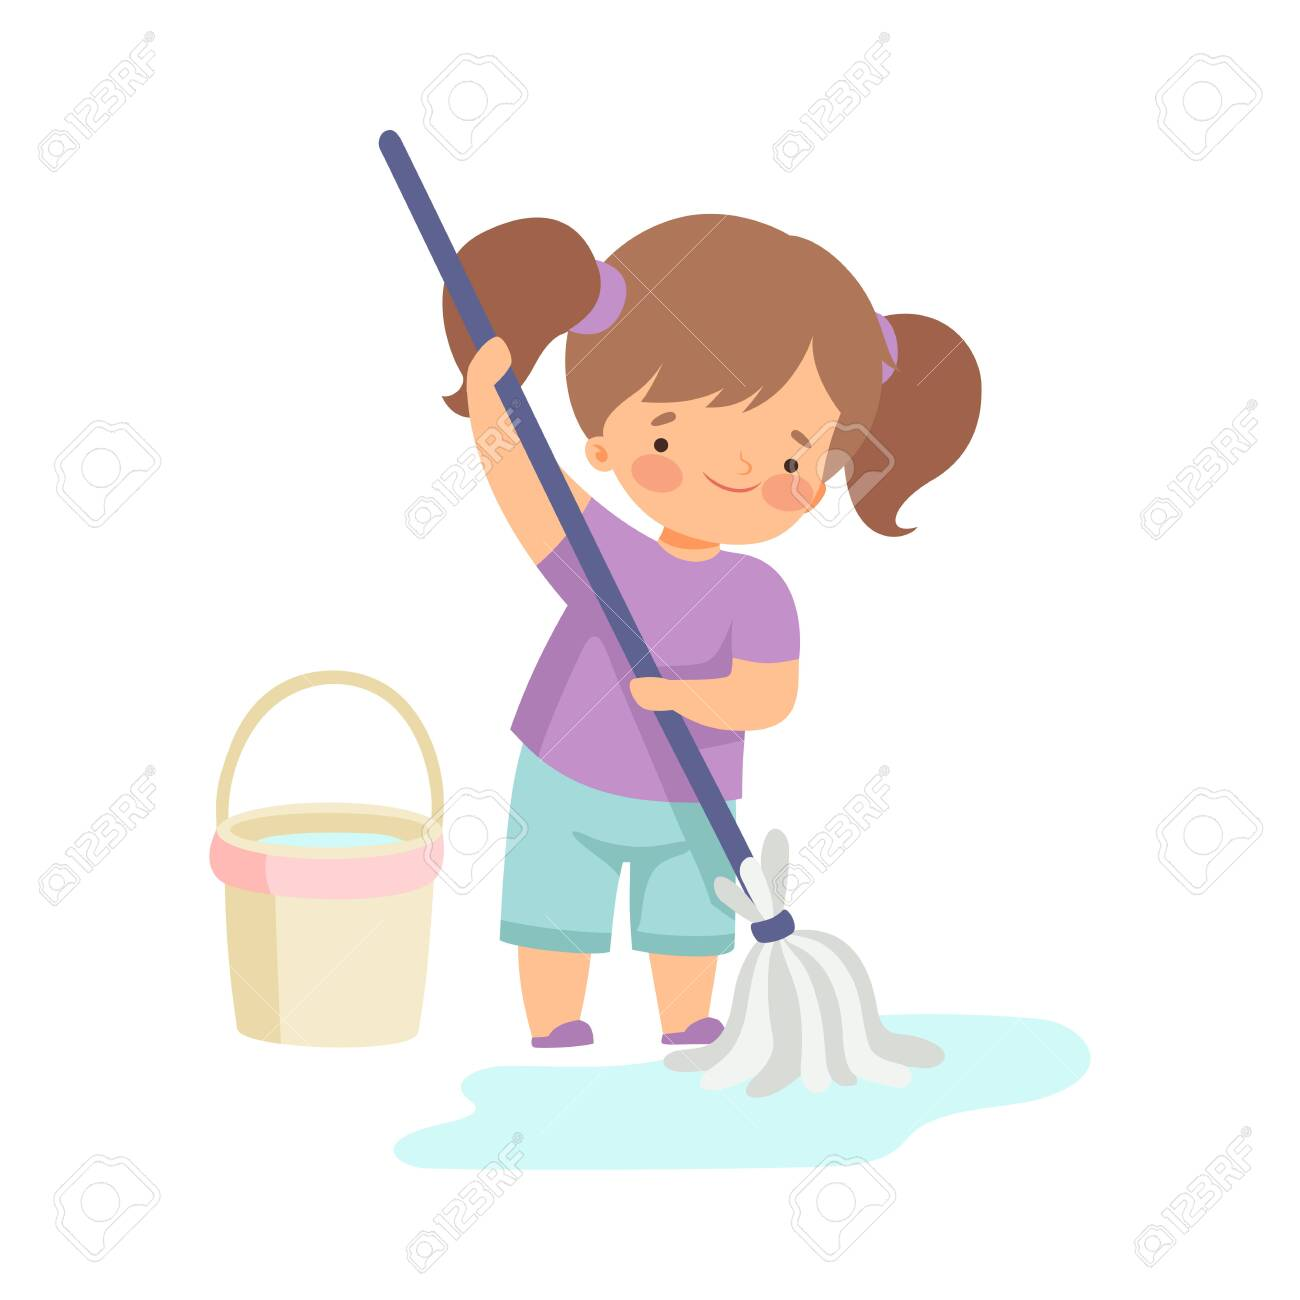 Cute Girl Washing the Floor with Bucket and Mop, Adorable Kid Doing Housework Chores at Home Vector Illustration on White Background. - 128165722